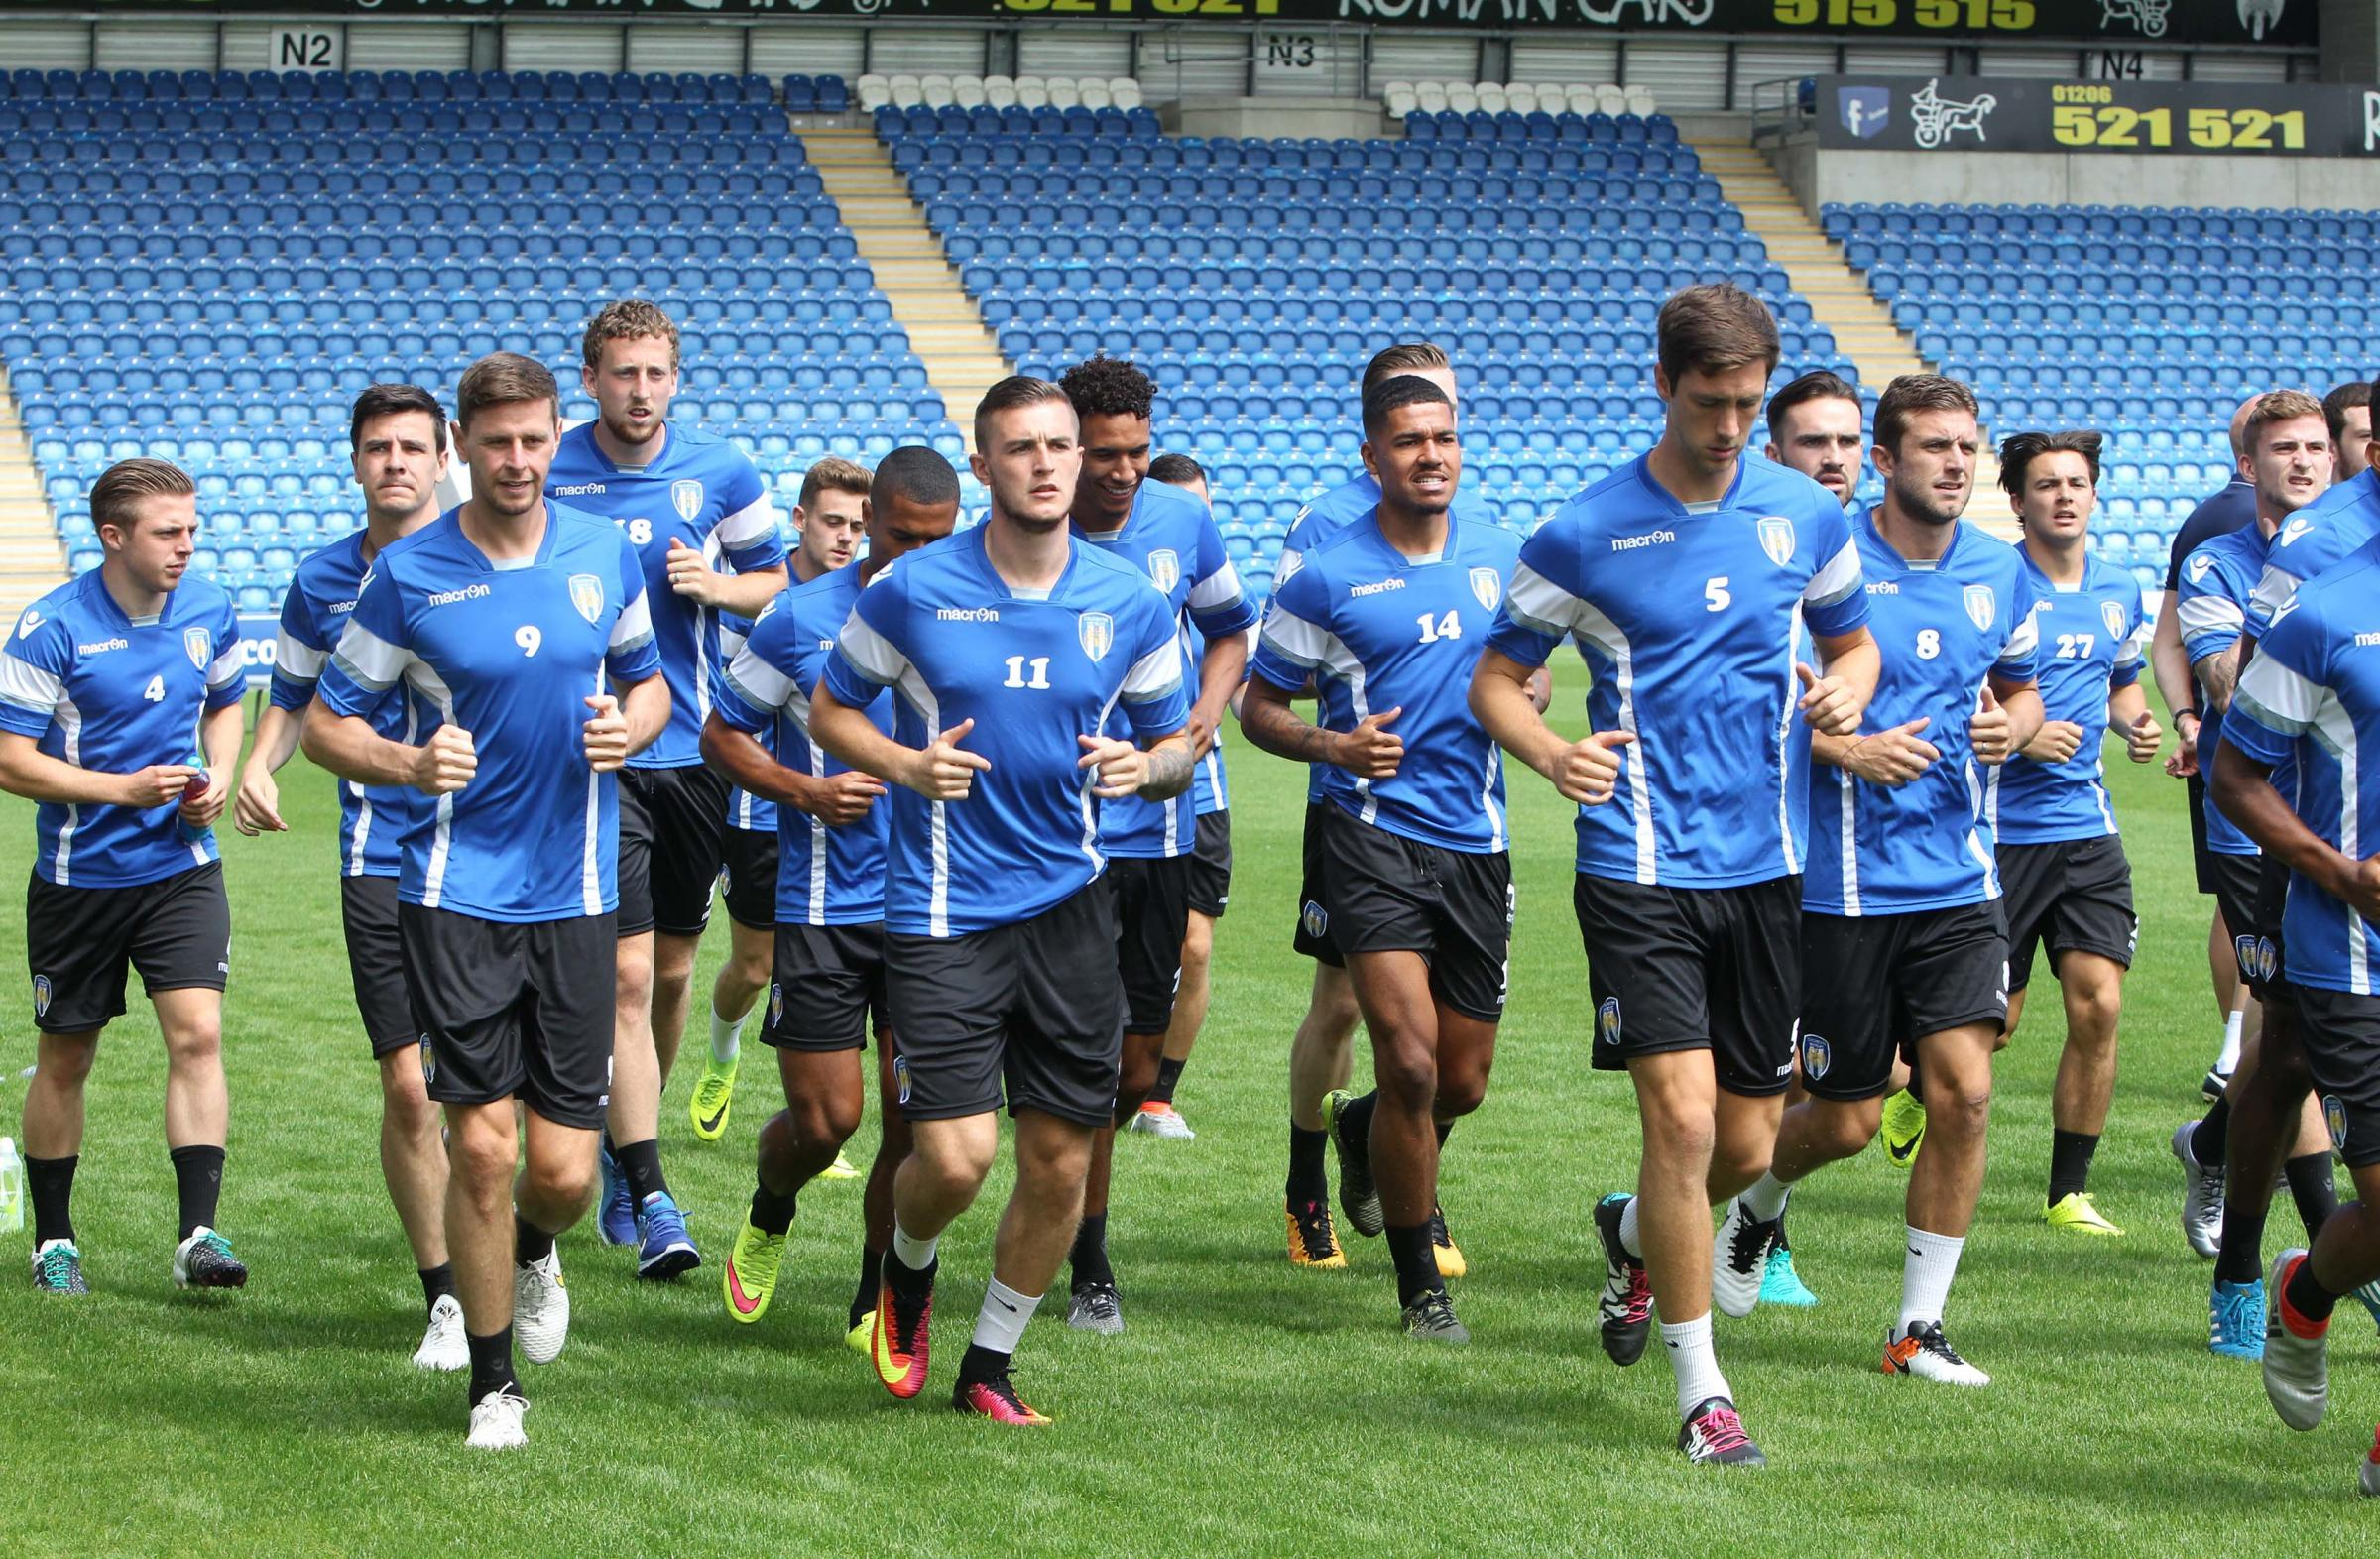 Preparation - Colchester United, pictured during last year's pre-season preparations, will return to Cheshire for a pre-season training camp next month. Picture: STEVE BRADING